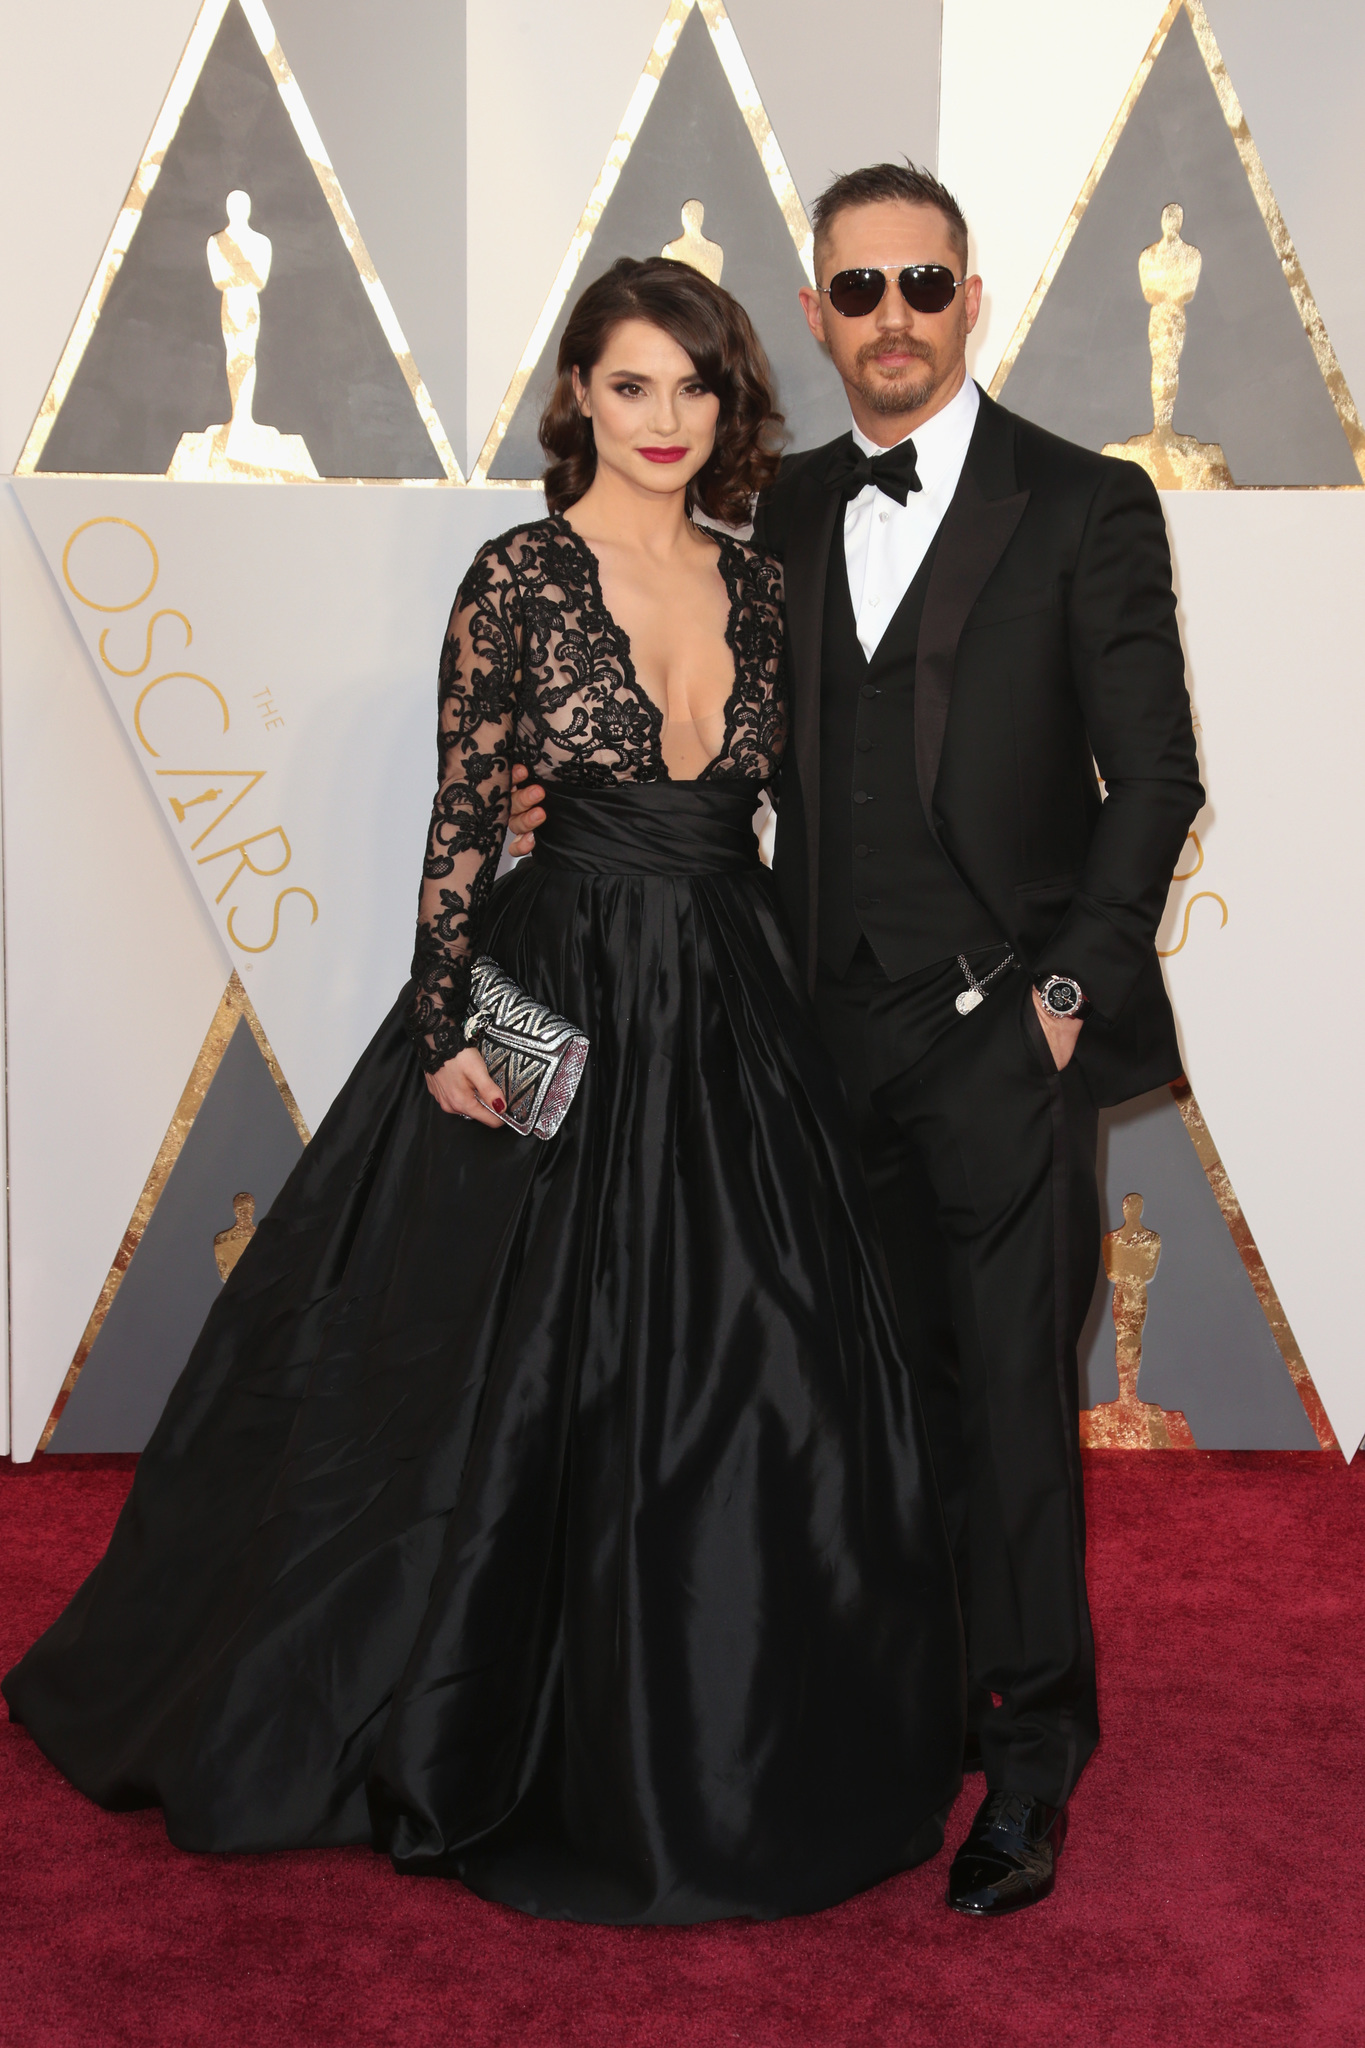 Tom Hardy and Charlotte Riley at an event for The Oscars (2016)